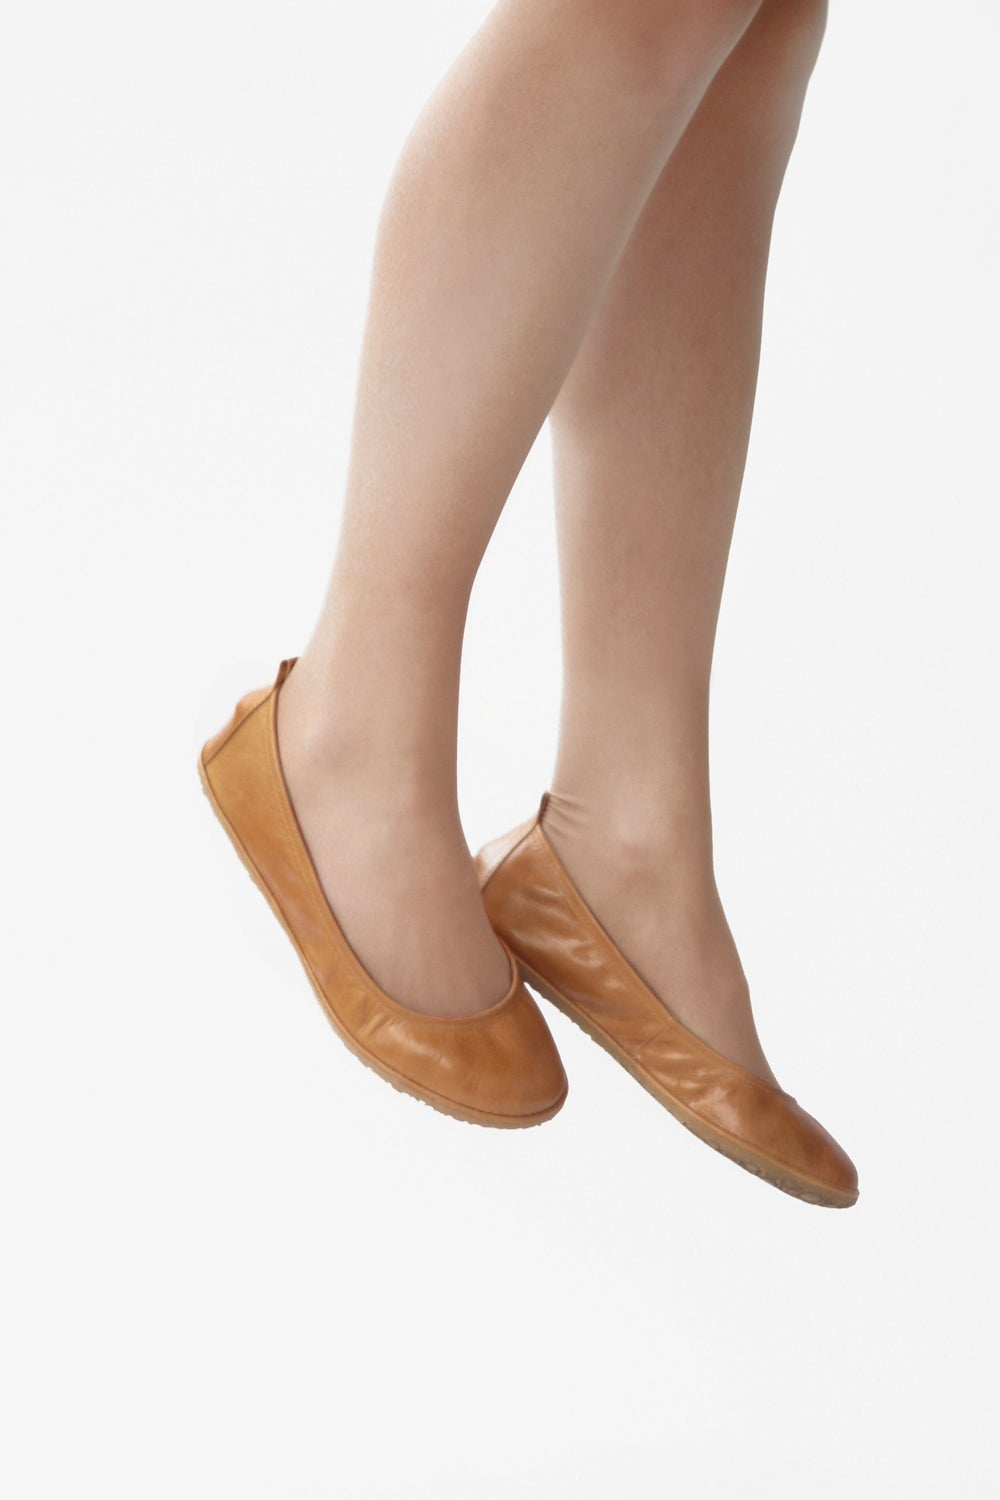 Image of Ballet flats - Eko in Glorious Wheat